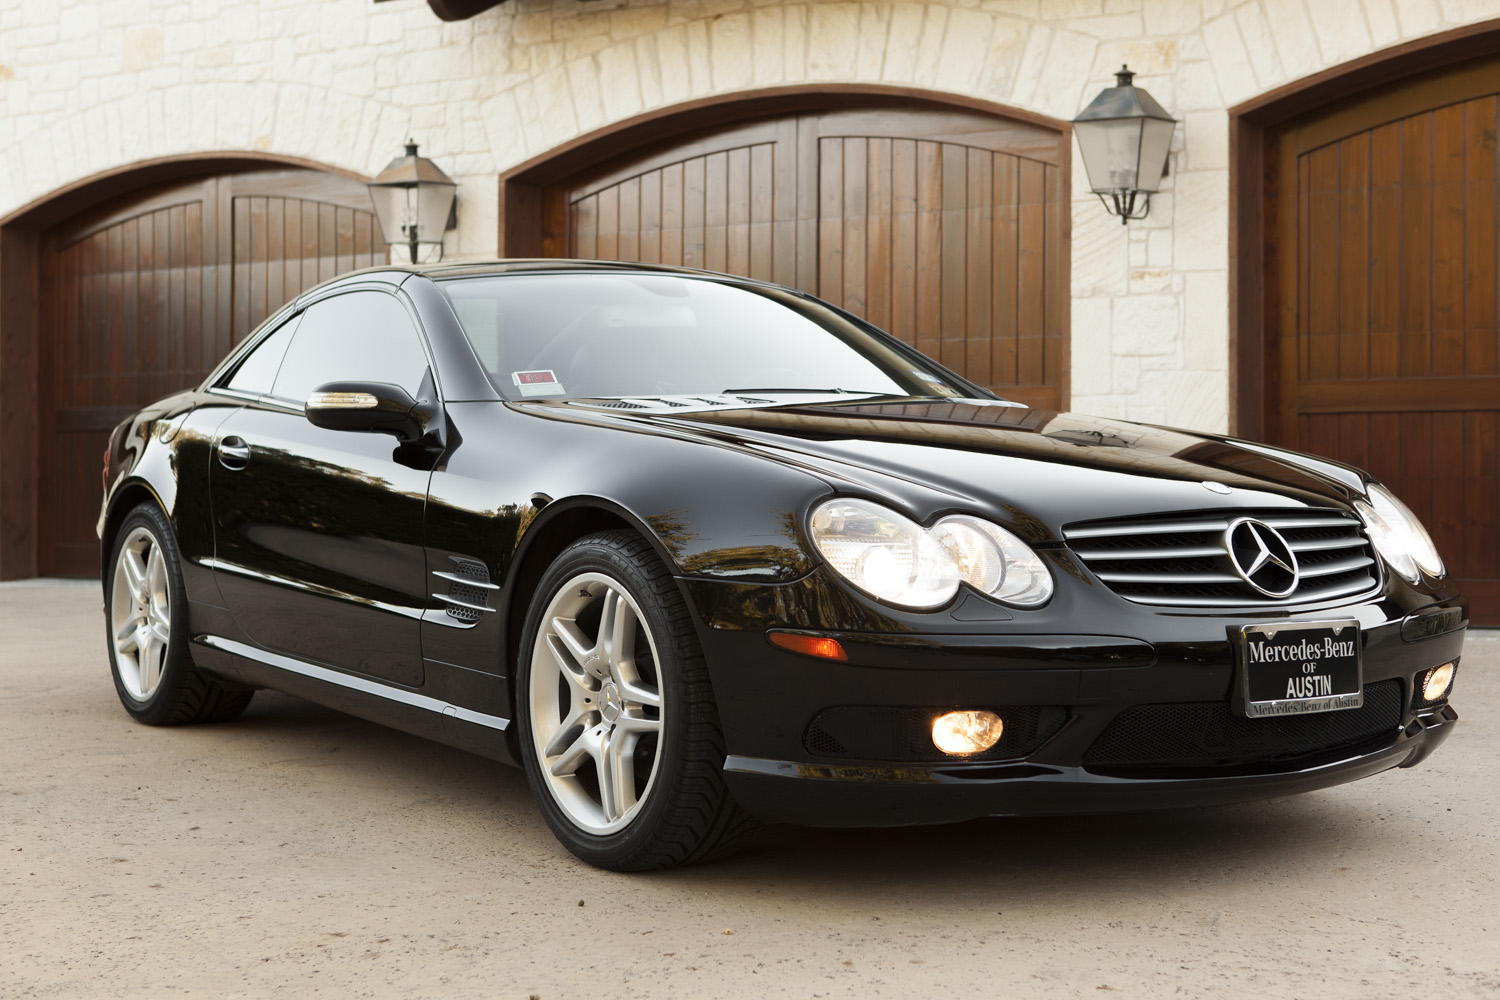 2006 mercedes benz sl class pictures cargurus for Mercedes benz sl convertible